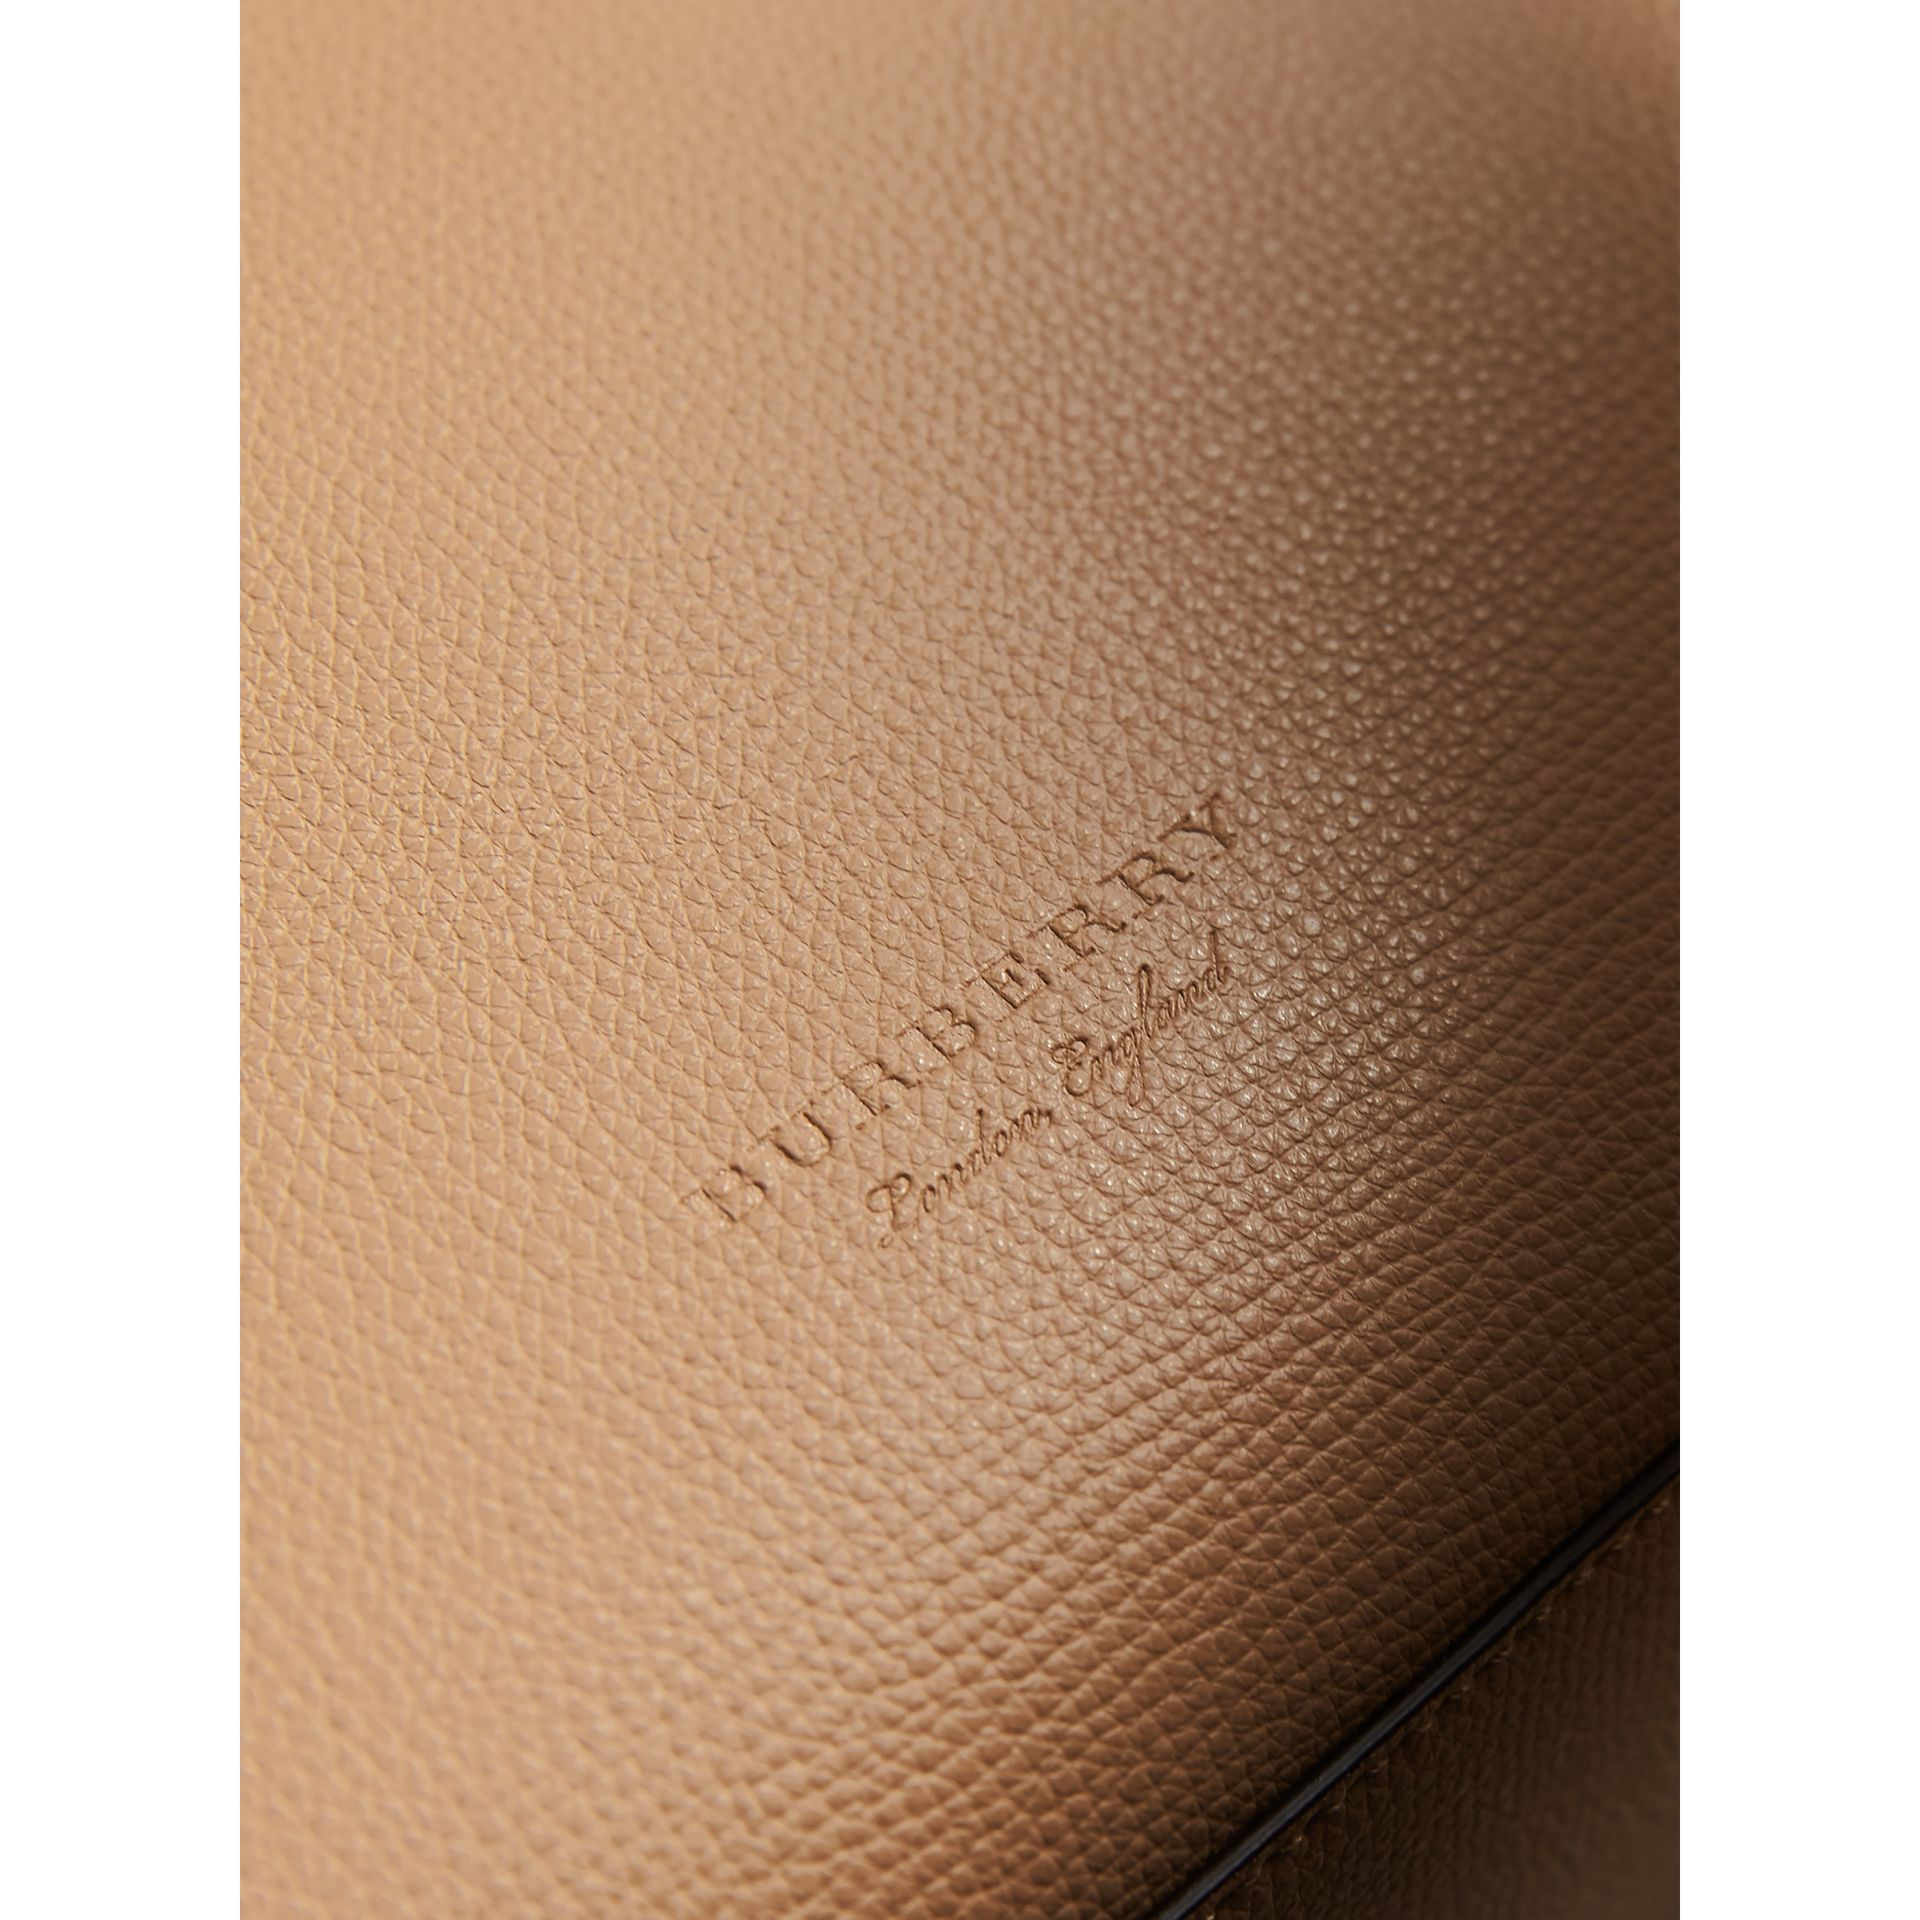 Medium Coated Leather Tote in Mid Camel - Women | Burberry Australia - gallery image 6